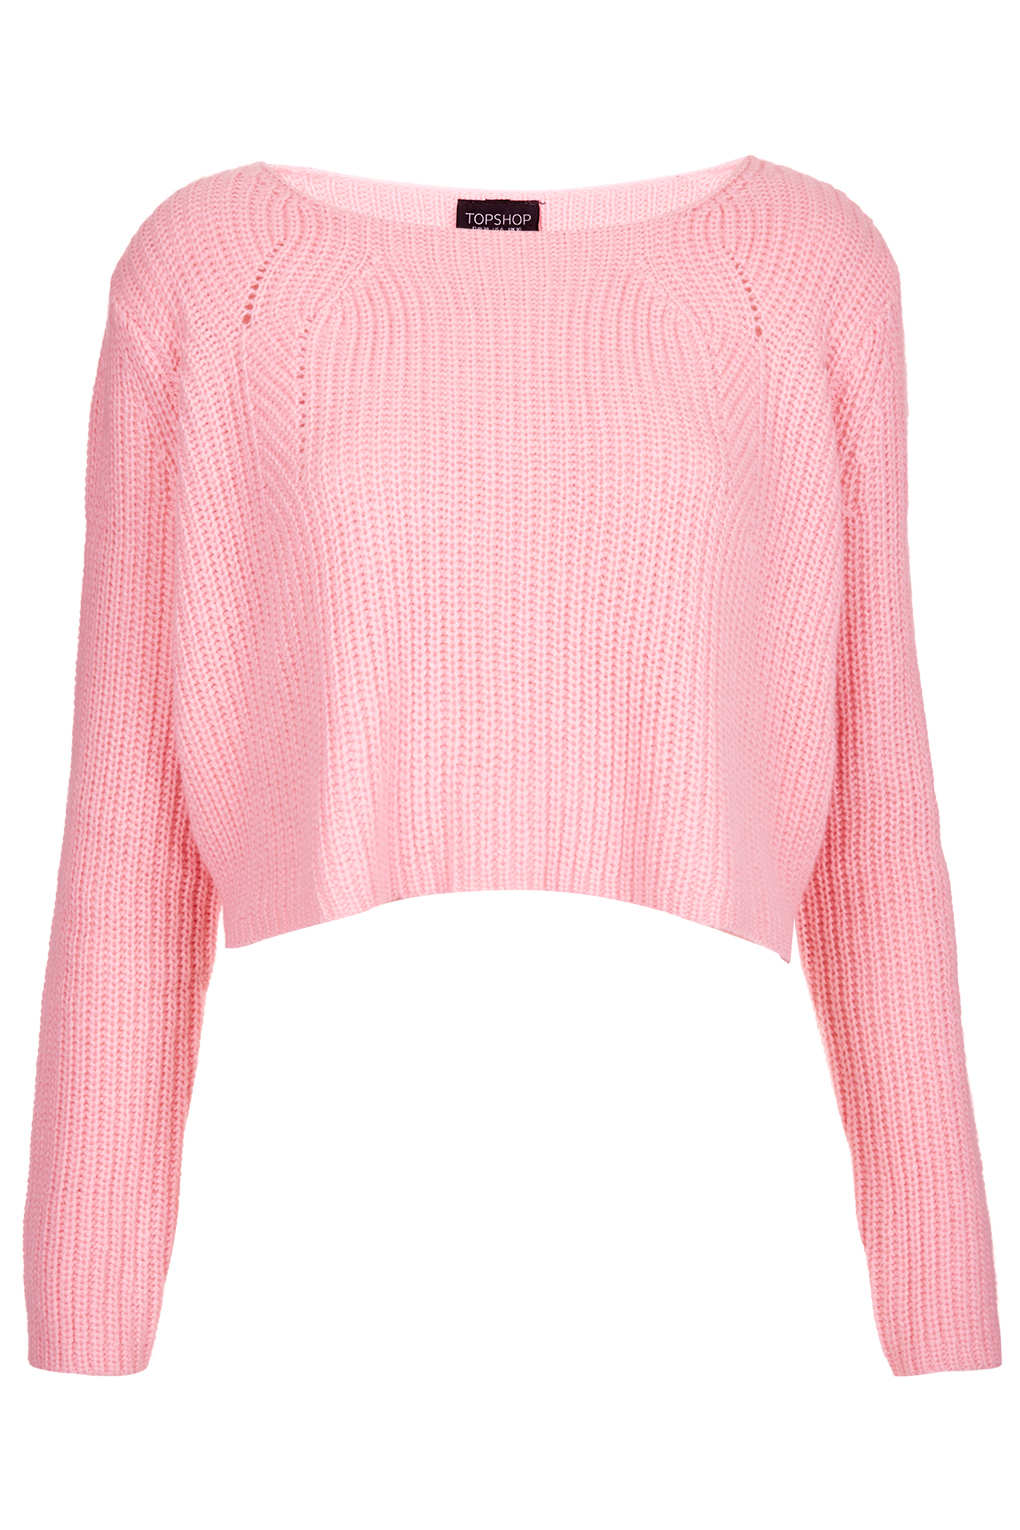 Topshop Petite Clean Ribbed Cropped Jumper in Pink | Lyst